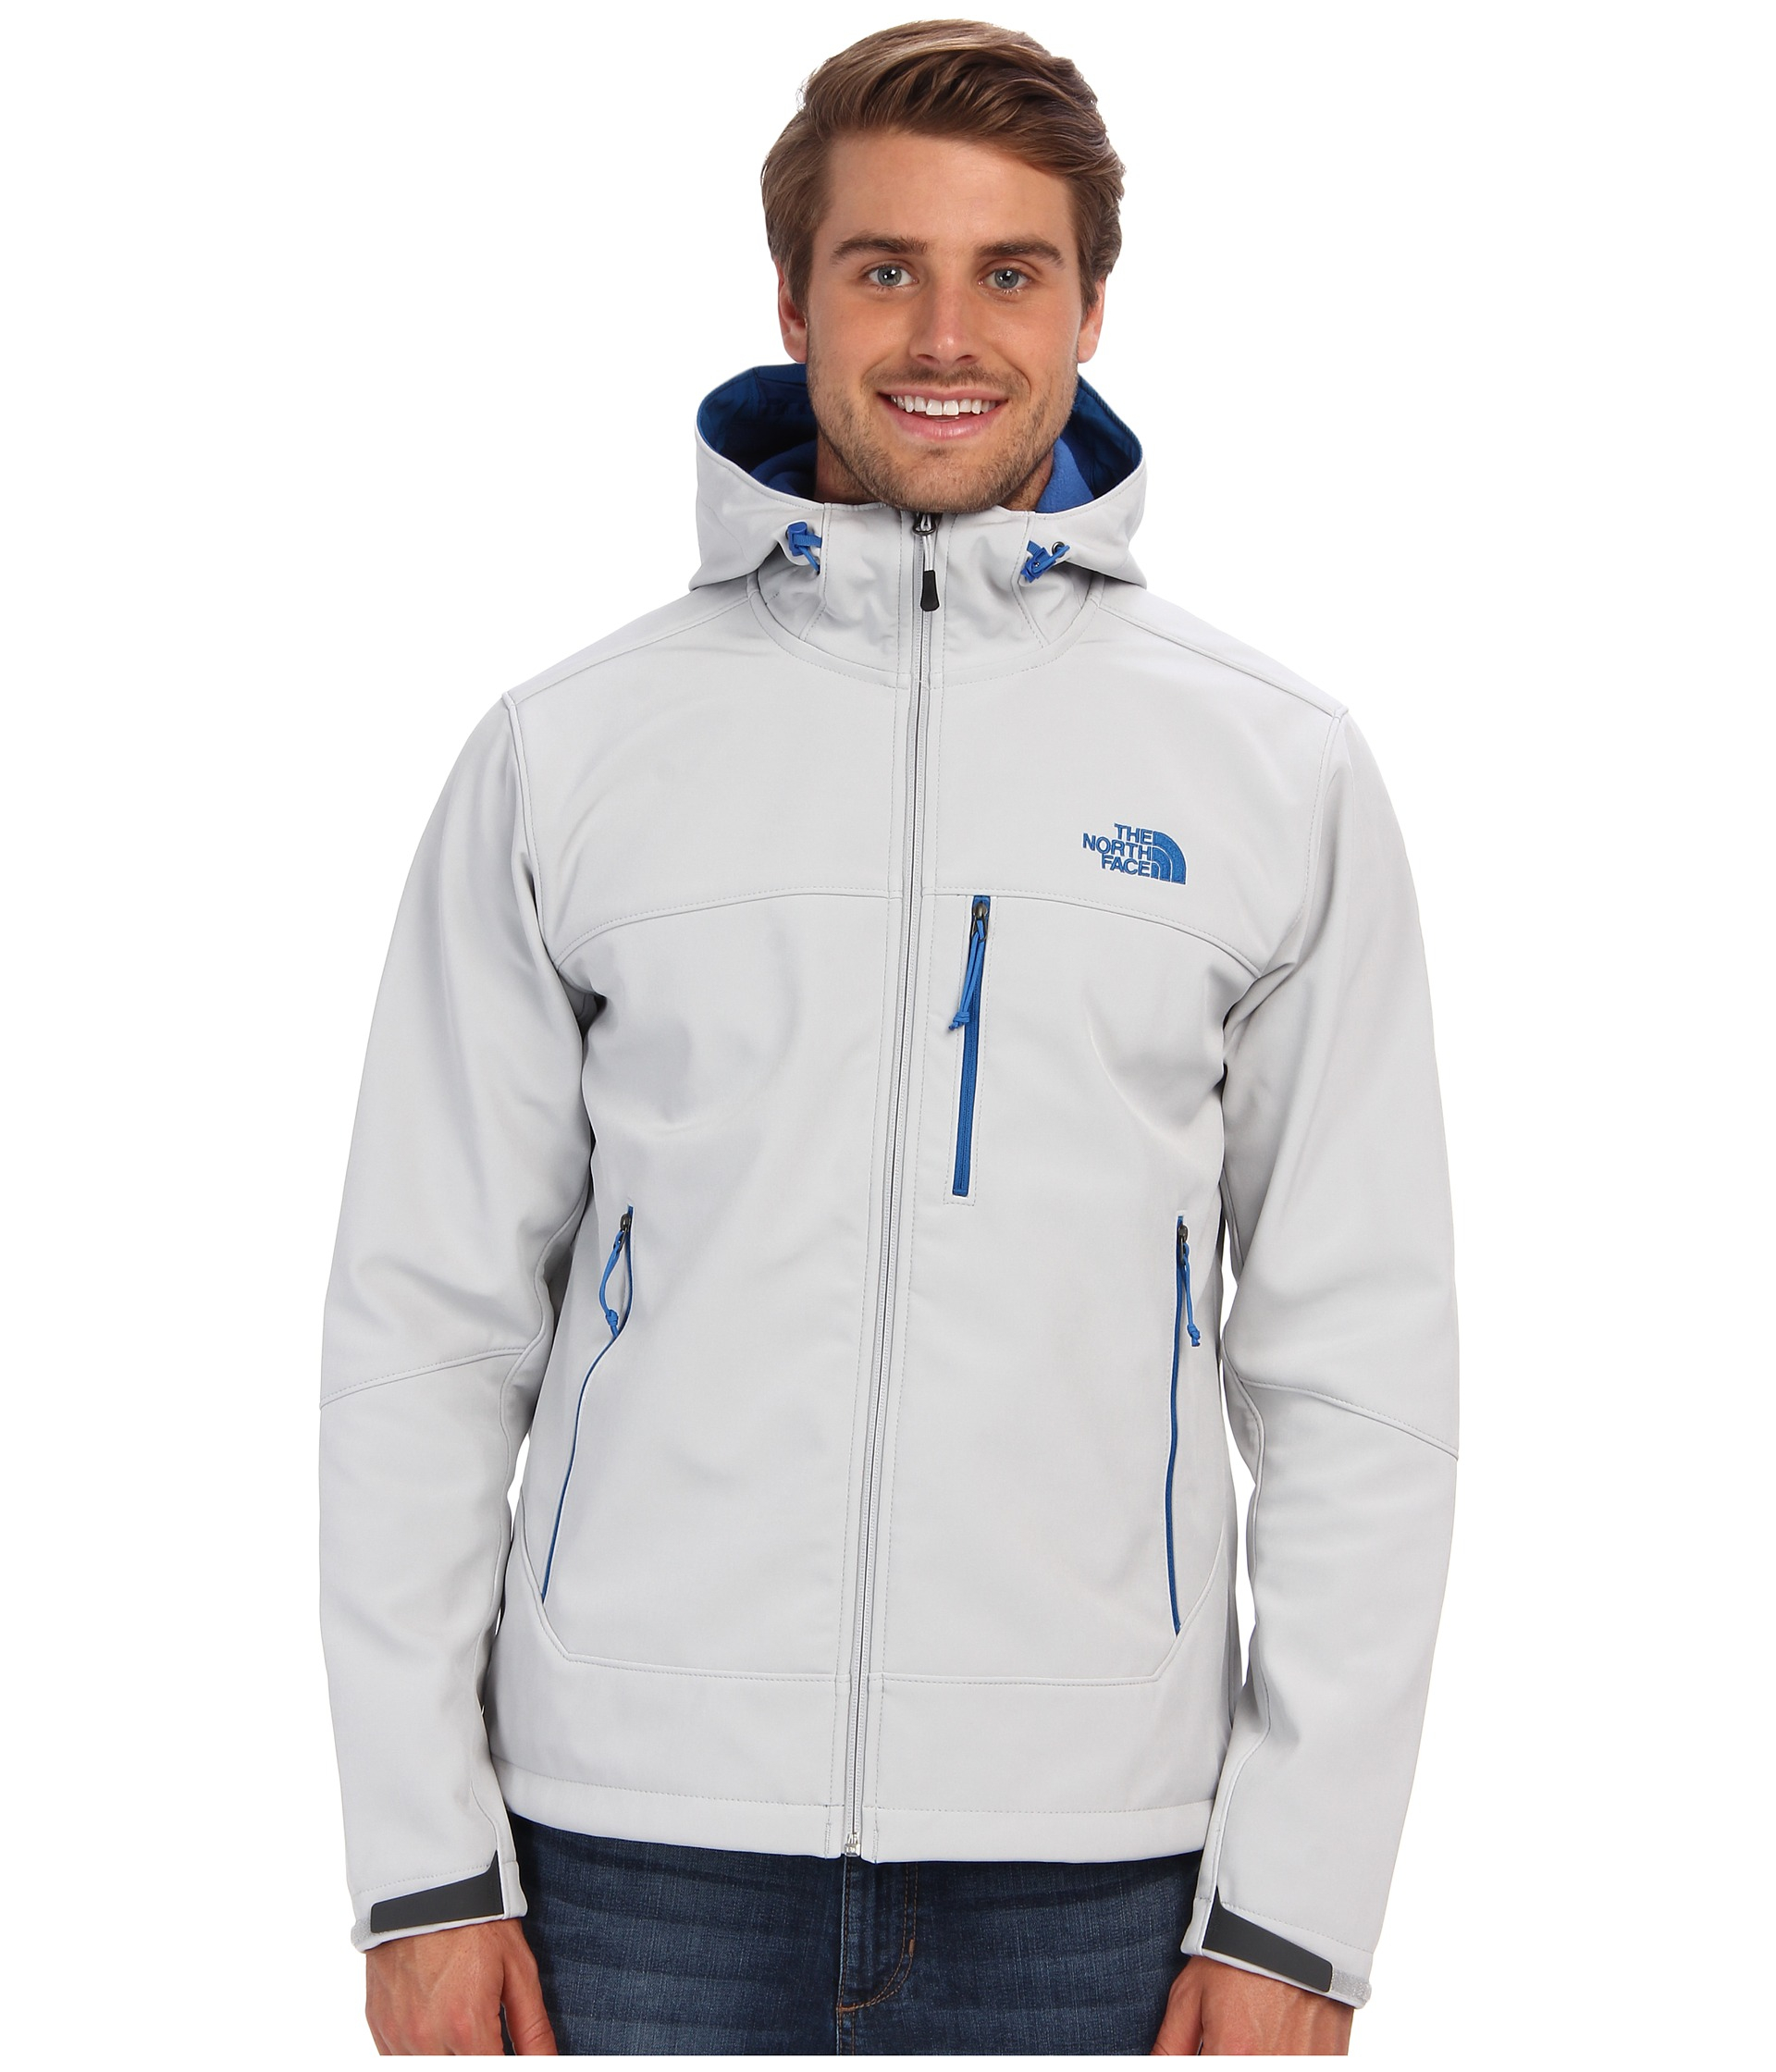 dcf500e5caee authentic lyst the north face apex bionic hoodie in gray for men 1604c 20388